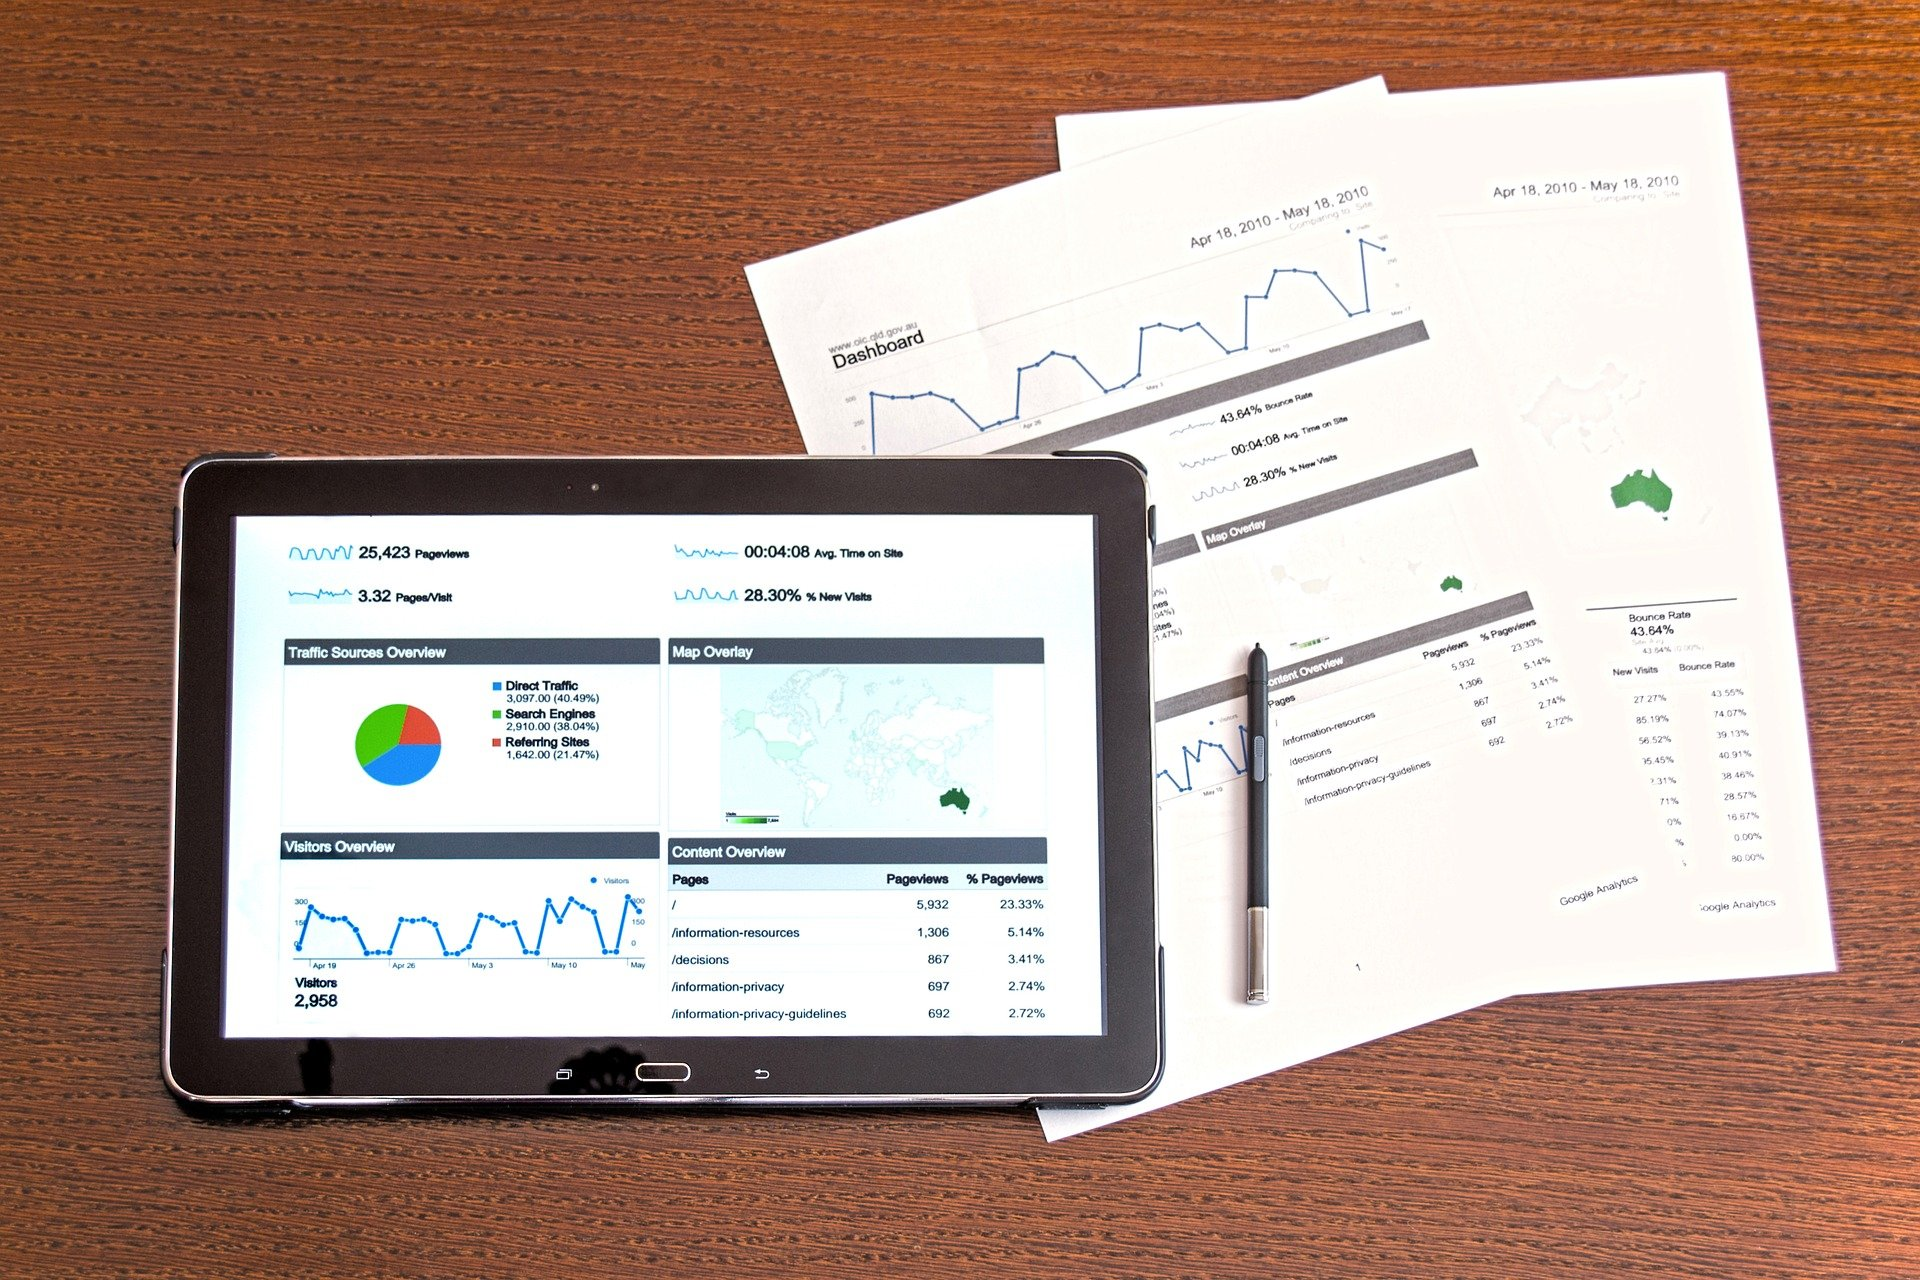 a tablet laying on top of papers indicating document digitisation